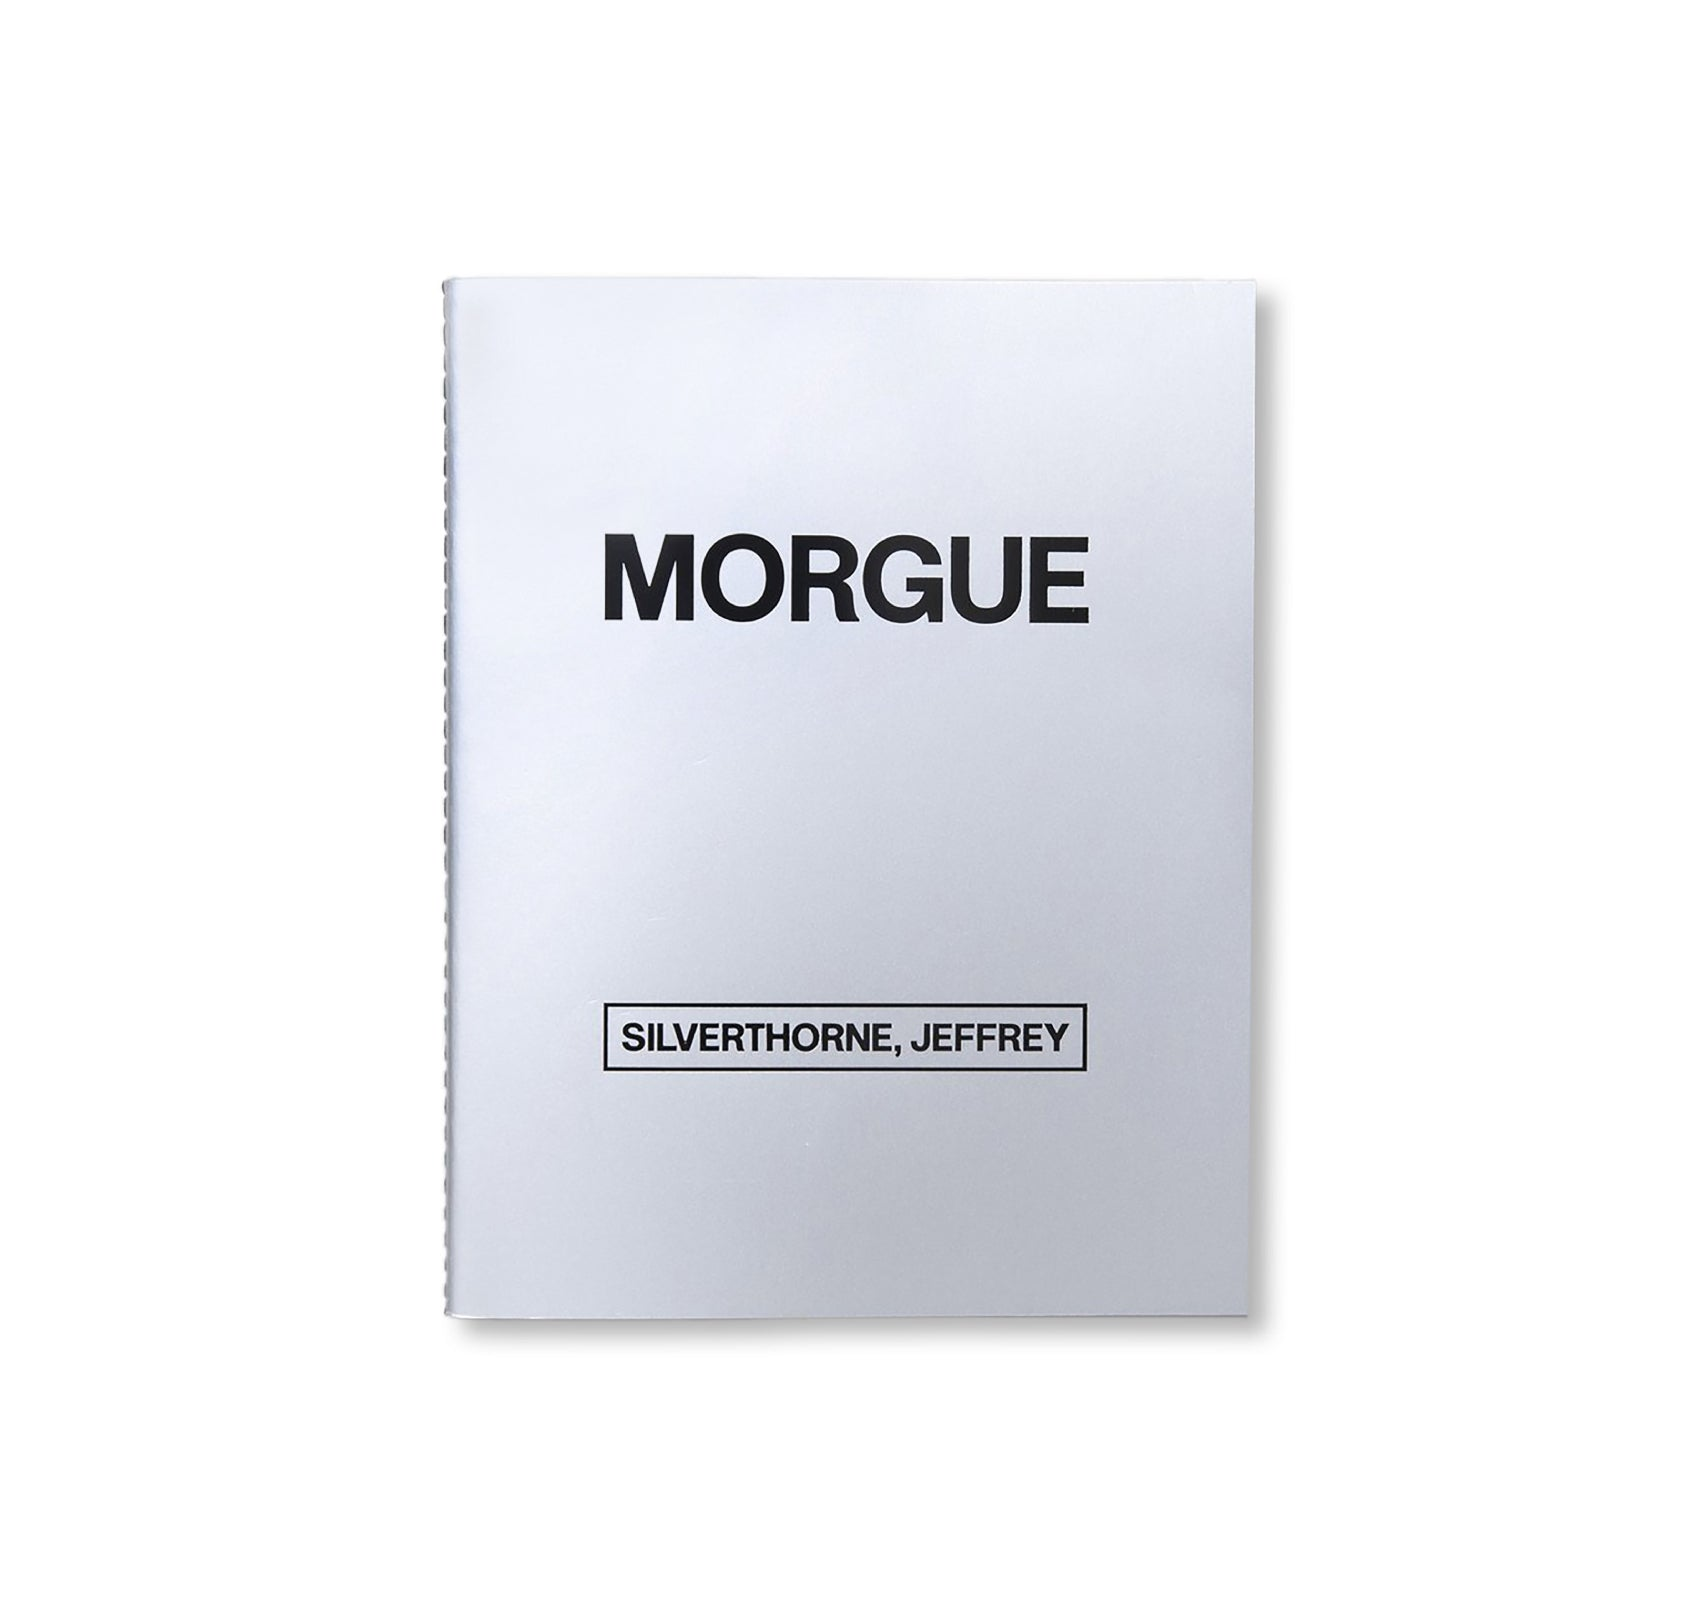 MORGUE by Jeffrey Silverthorne